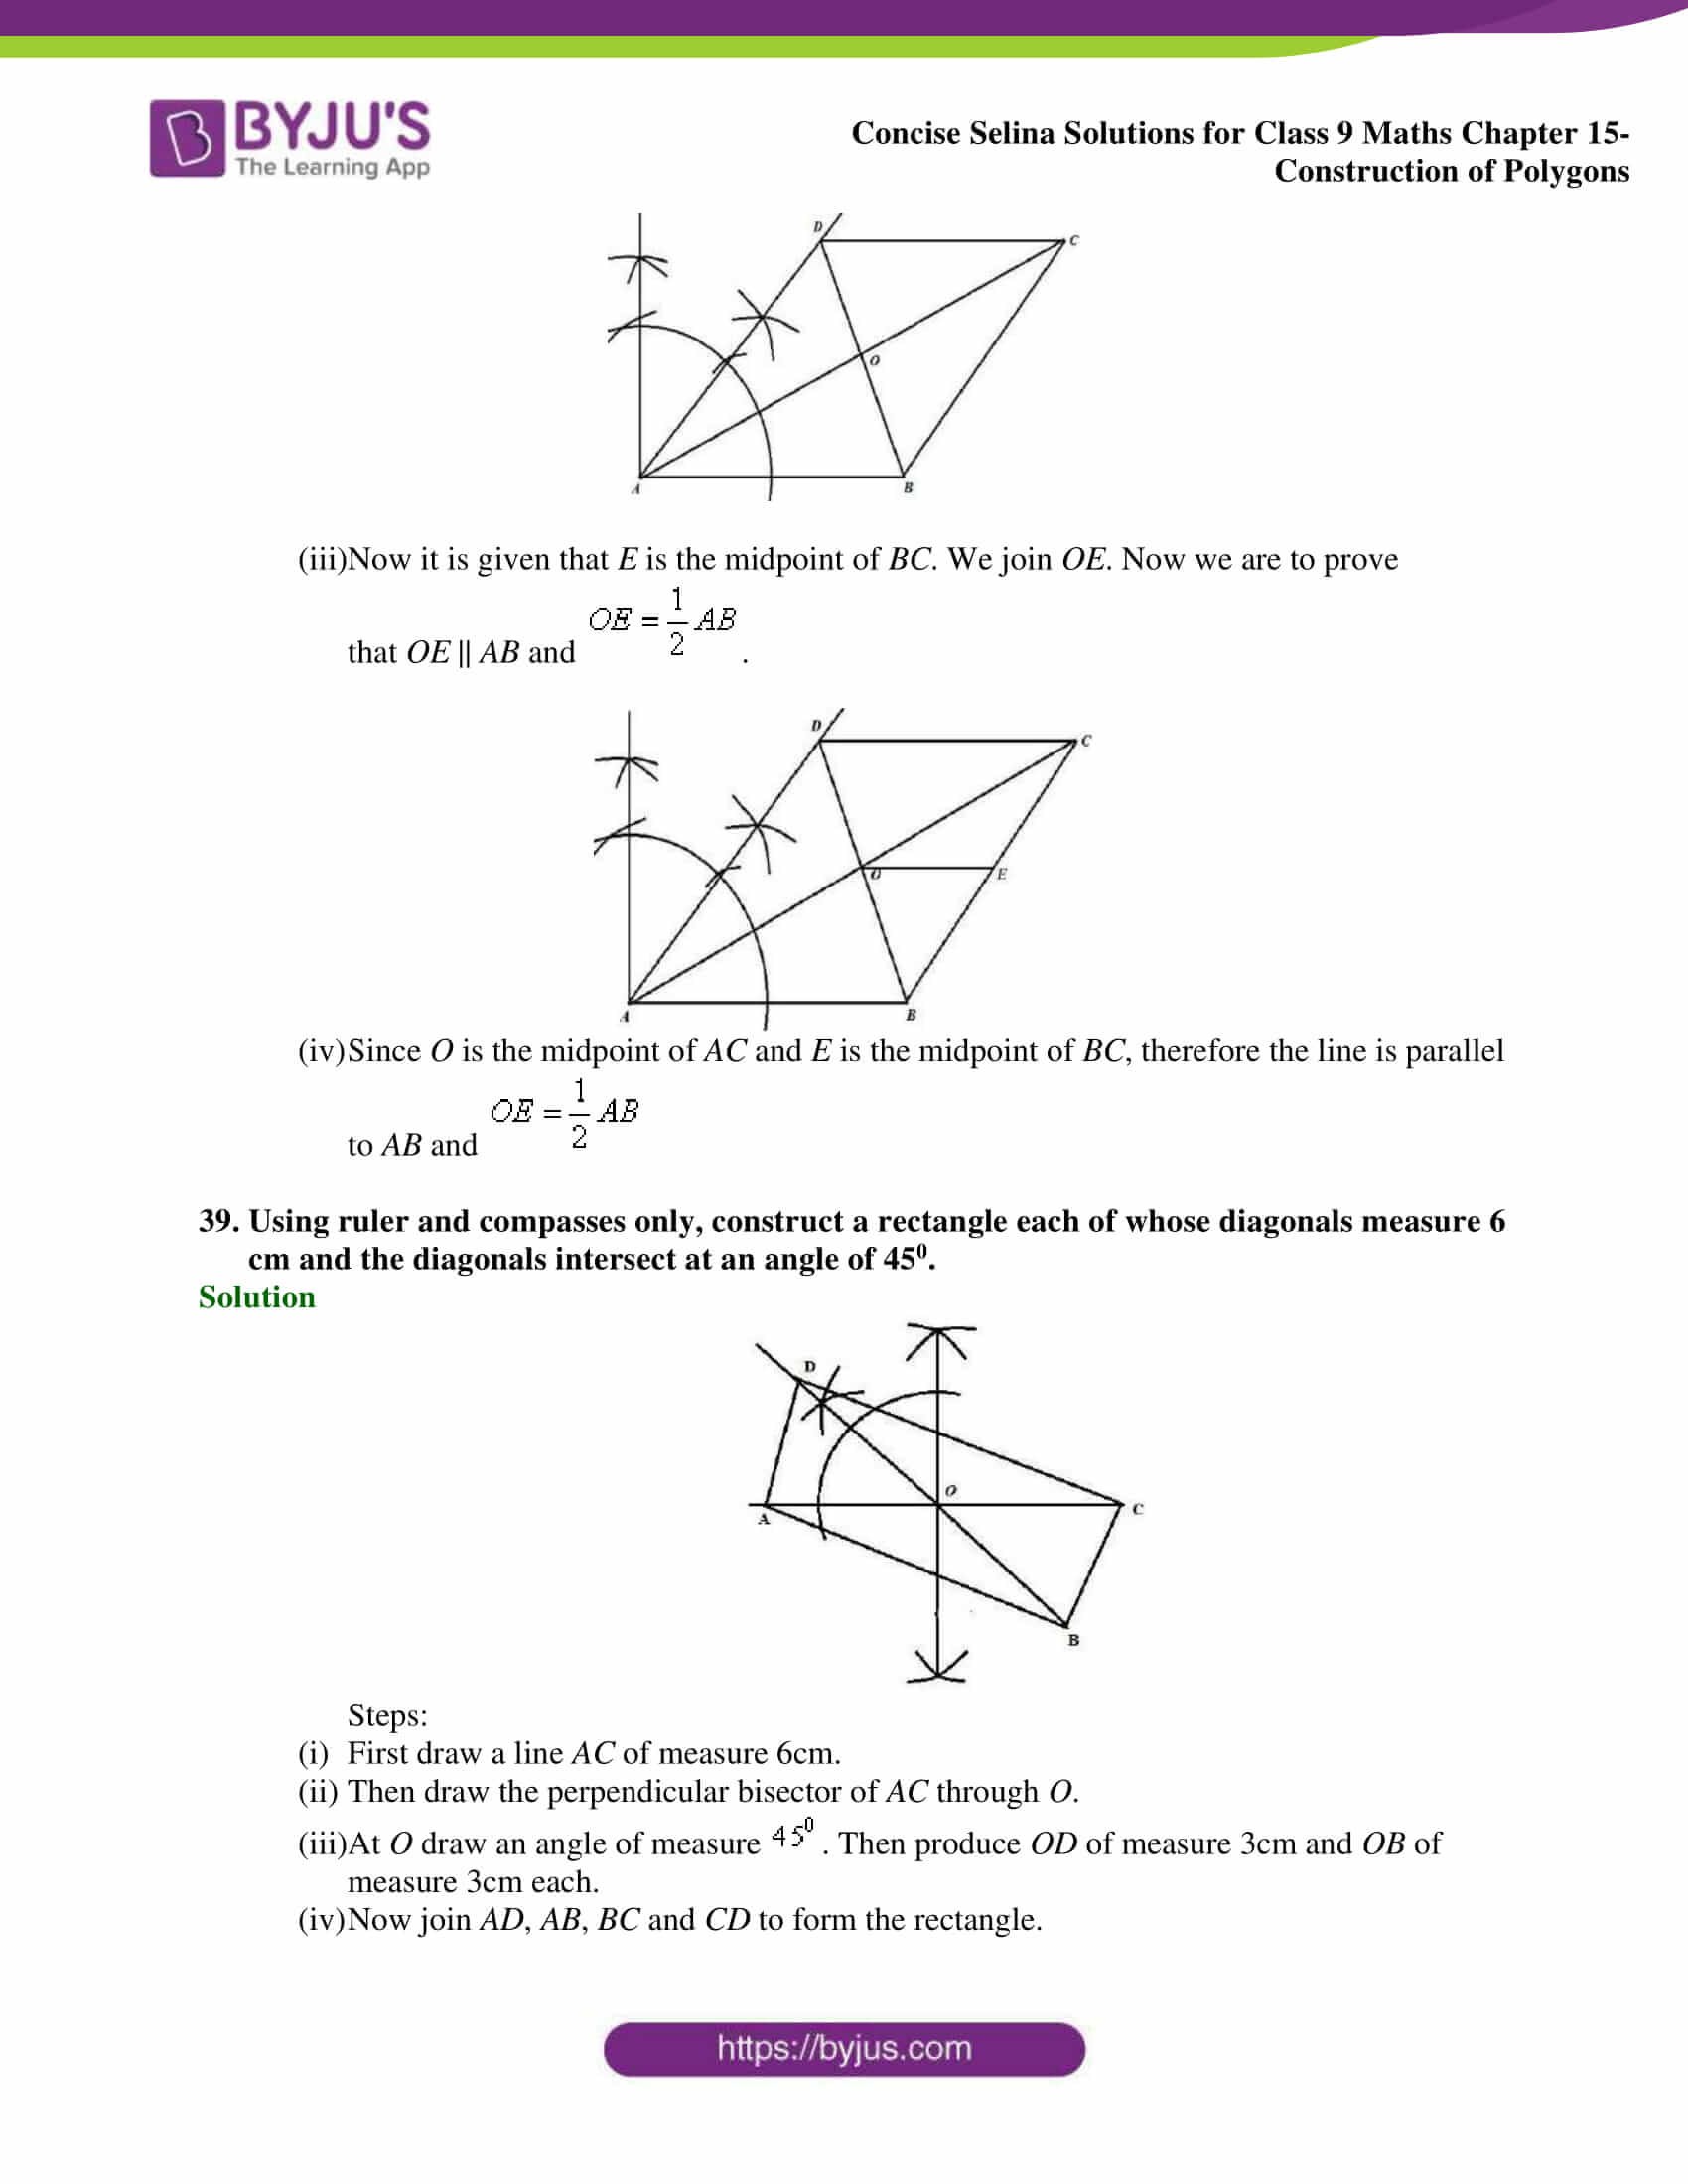 selina Solutions for Class 9 Maths Chapter 15 part 21